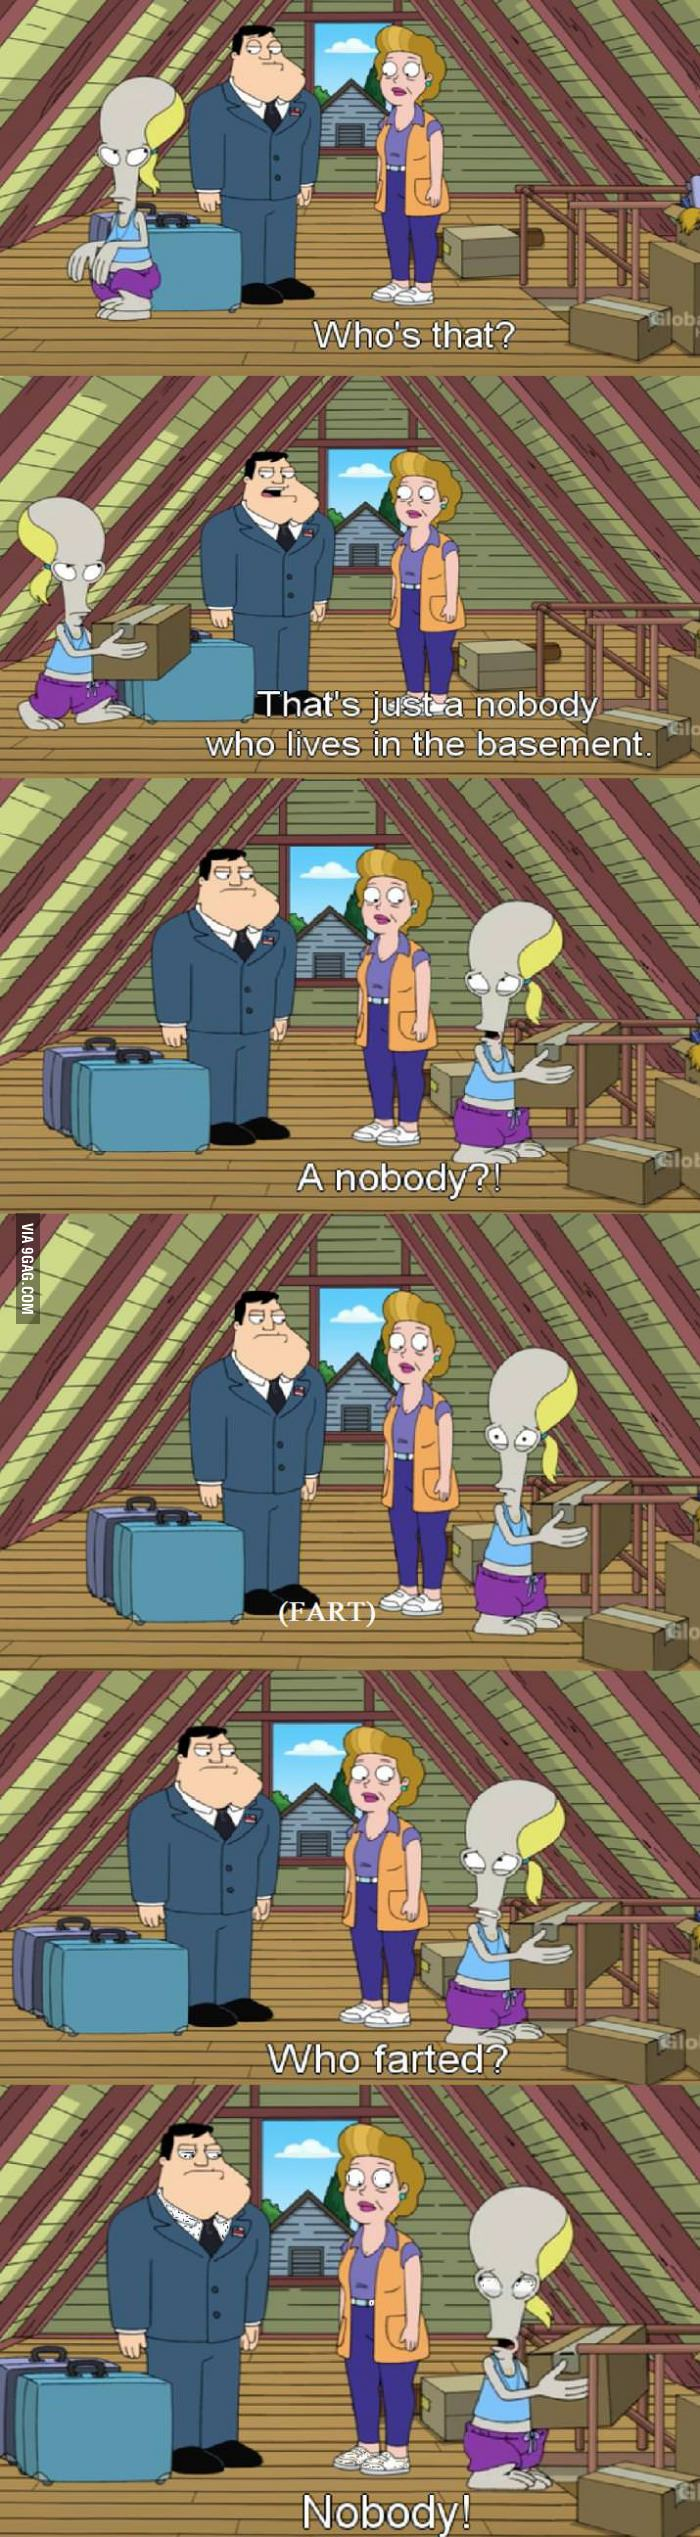 Just Roger American Dad Roger American Dad Tv Shows Funny